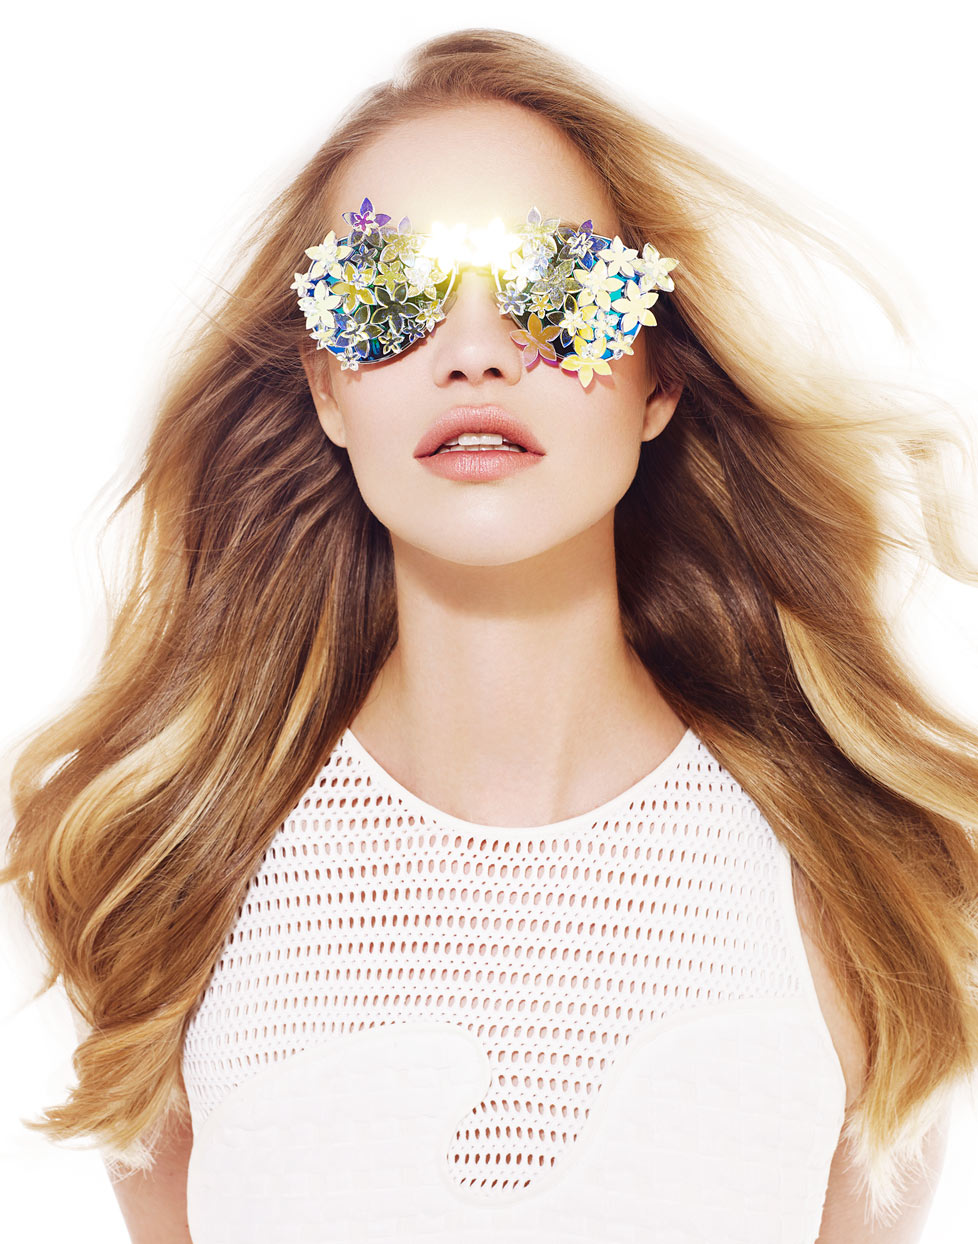 Mark DeLong - Beauty Photographer - Portrait of young woman wearing gold flower covered sunglasses and white mesh sleeveless top